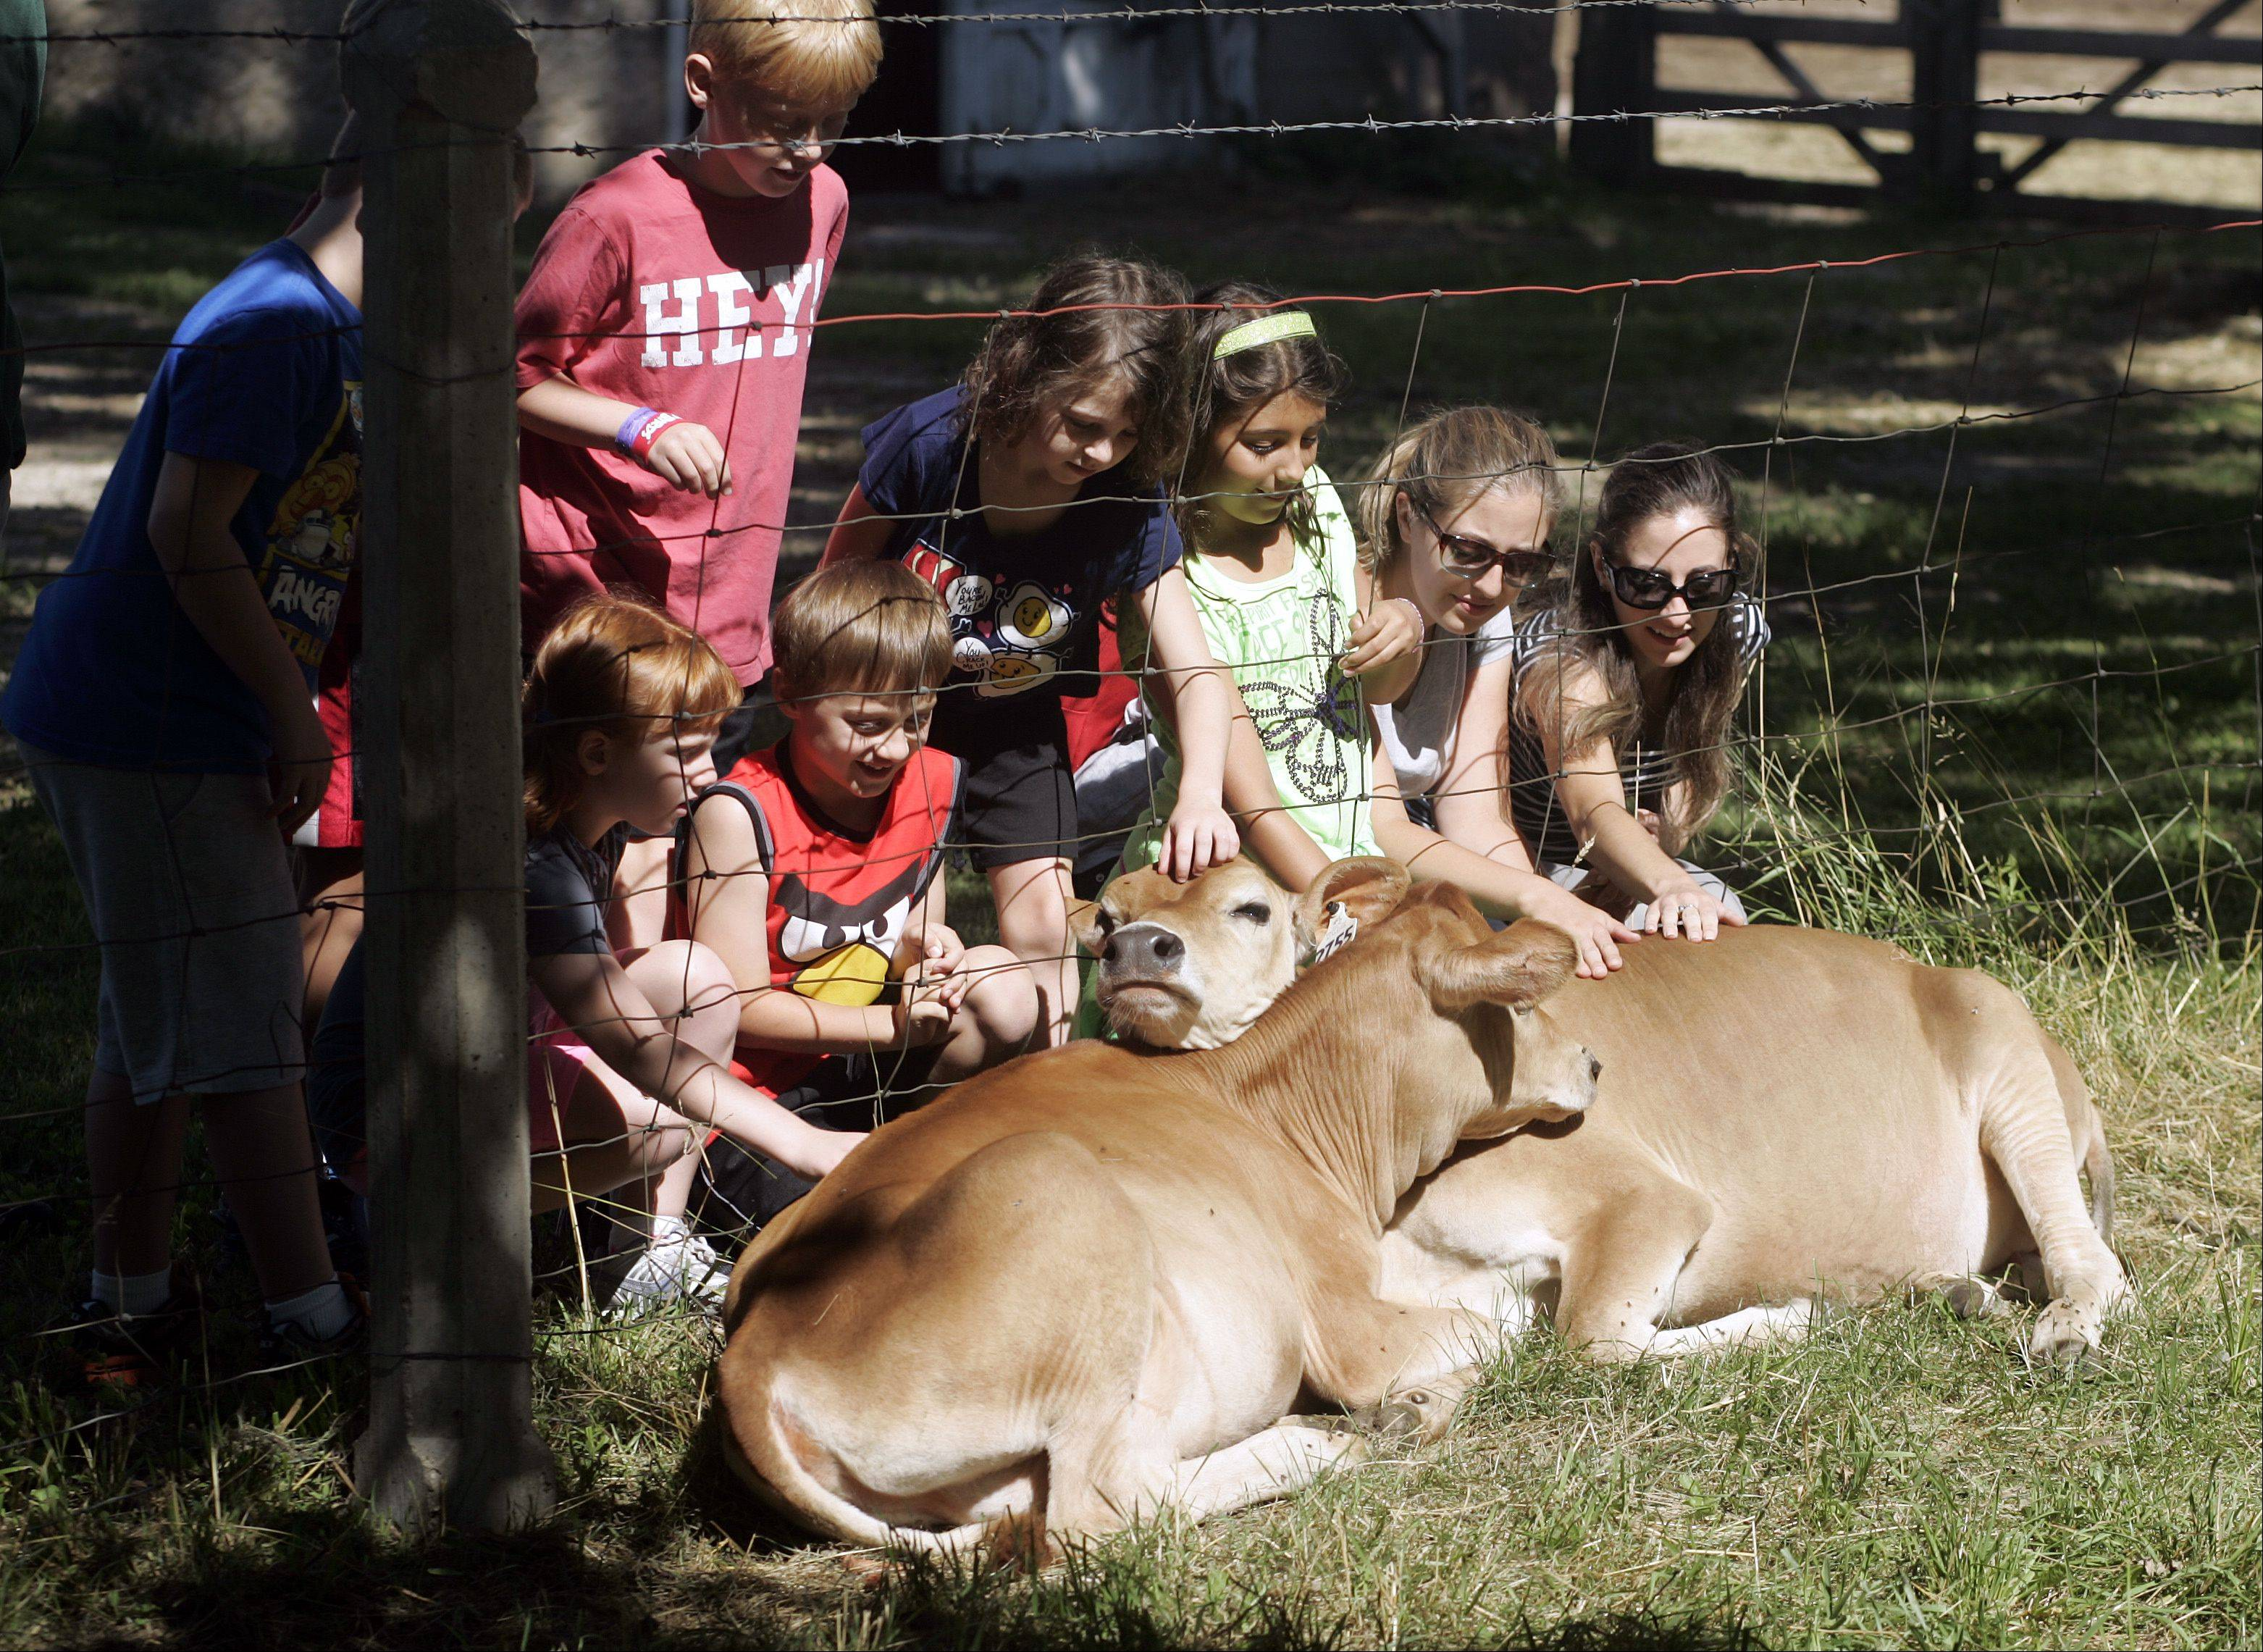 Students and teachers from EduCare in St. Charles take a moment to pet a couple new cows or calfs during a visit to Primrose Farm in St. Charles Wednesday, to learn more about life on a 1930's circa farm. The kids investigated the livestock and also were treated to a wagon ride through the park.